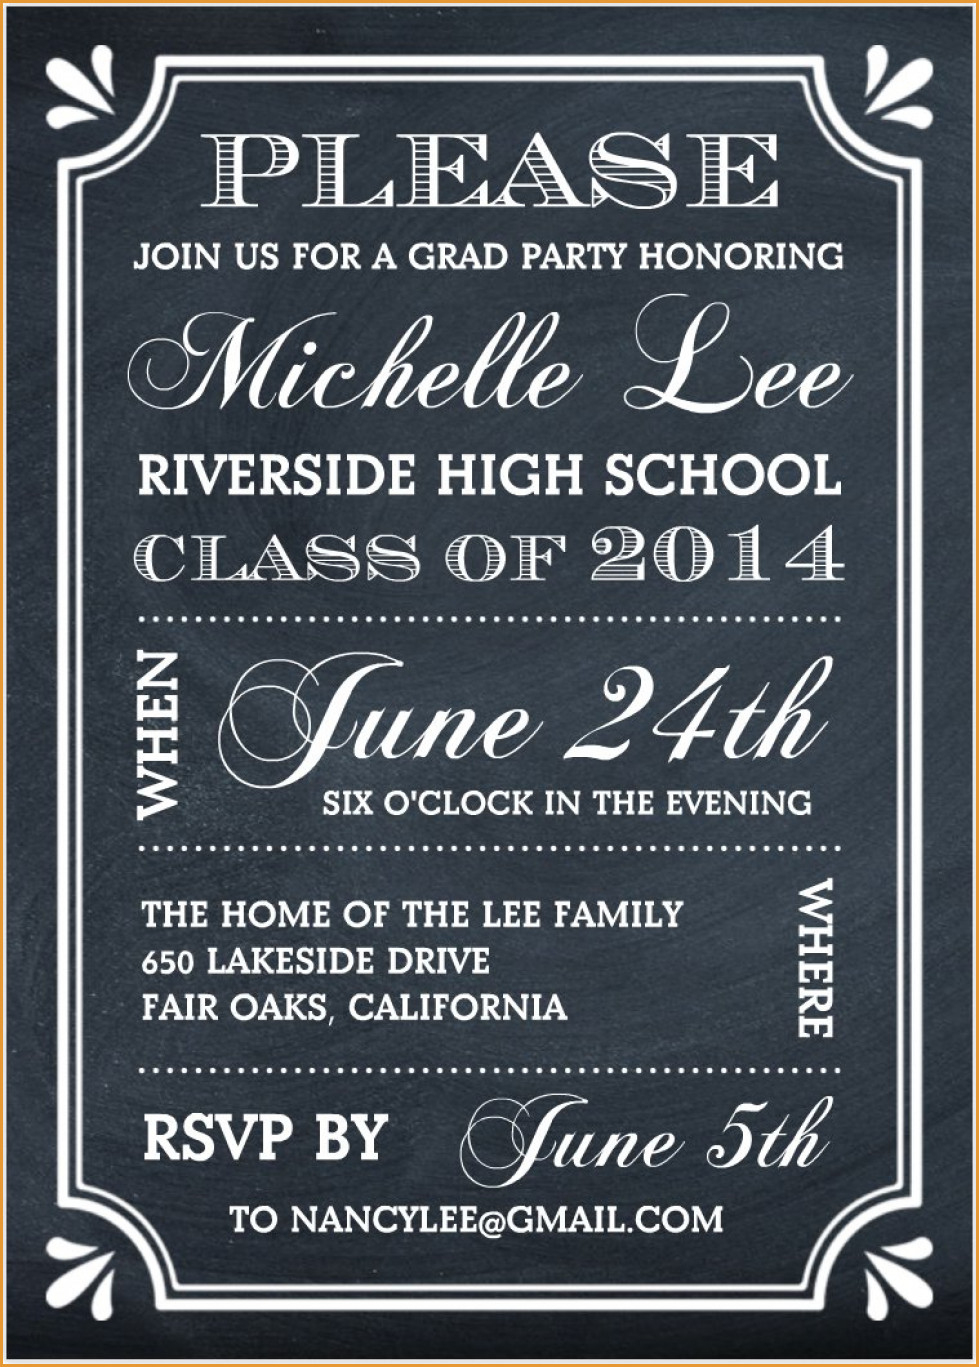 Party Invitations: Elegant Free Graduation Party Invitations Designs - Free Printable Graduation Party Invitations 2014